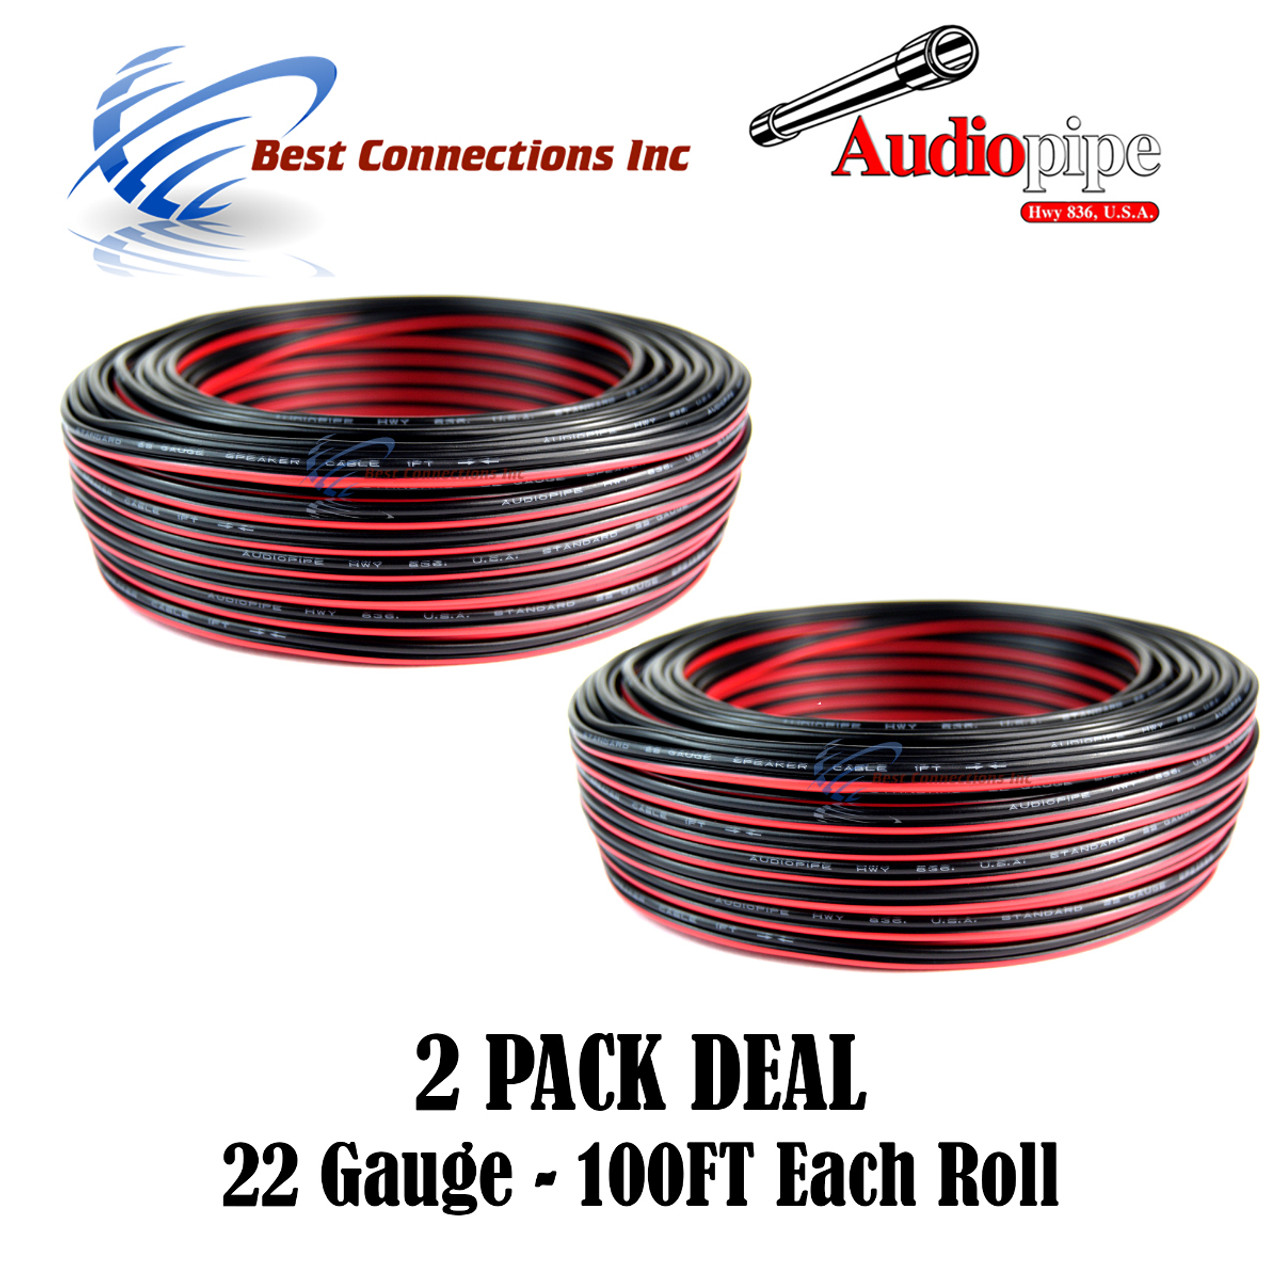 Heavy Duty 14 Gauge 7 Way Conductor Wire RV Trailer Cable Cord Insulated Copper ALL STAR TRUCK PARTS 30 FT ROLL